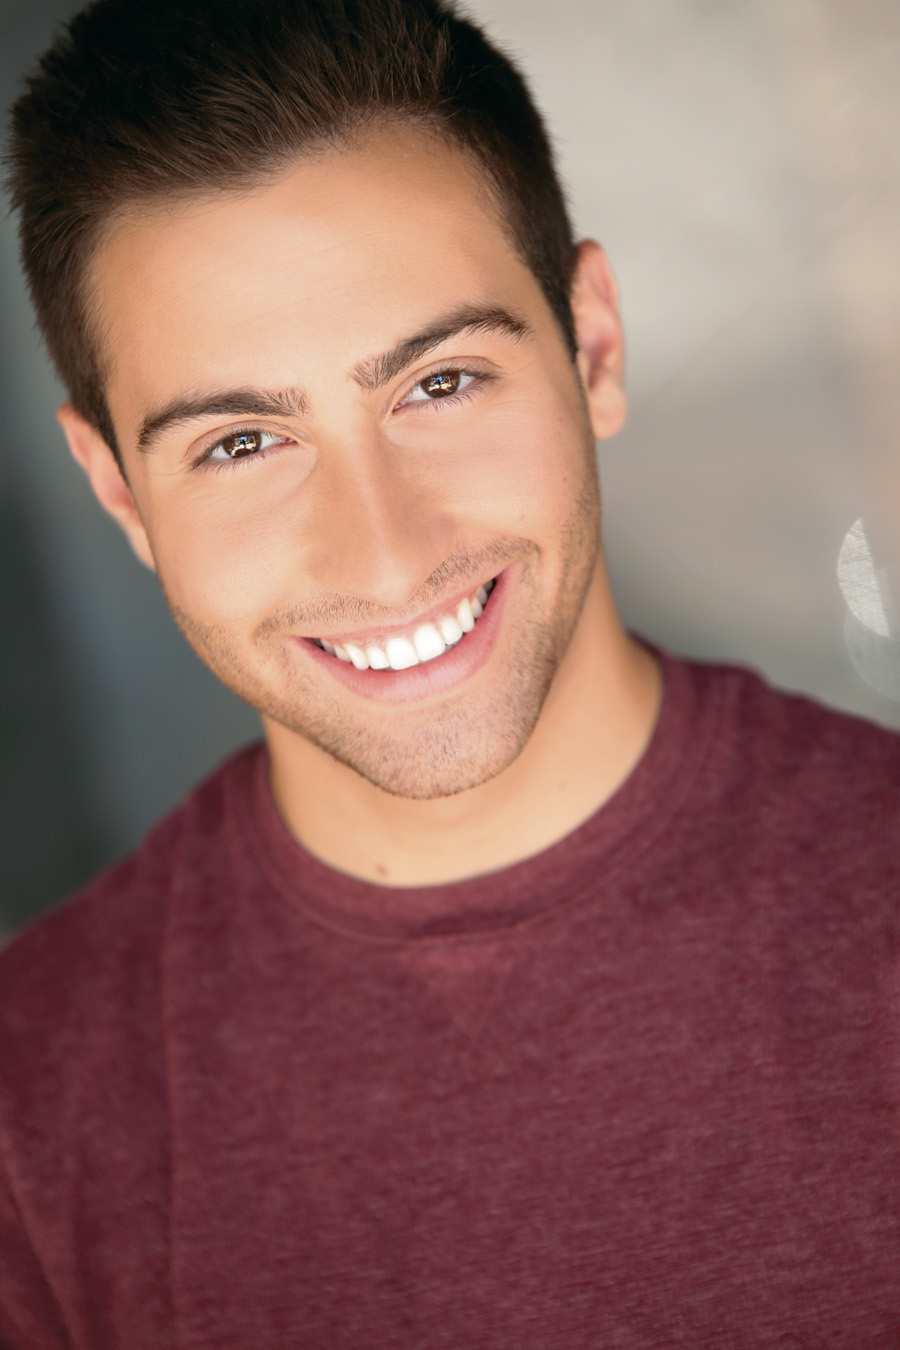 Branden Holzer is a graduate of de Toledo High School, West Hills, California.  He will be a Senior in the BFA Musical Theatre Program at the University of Miami.